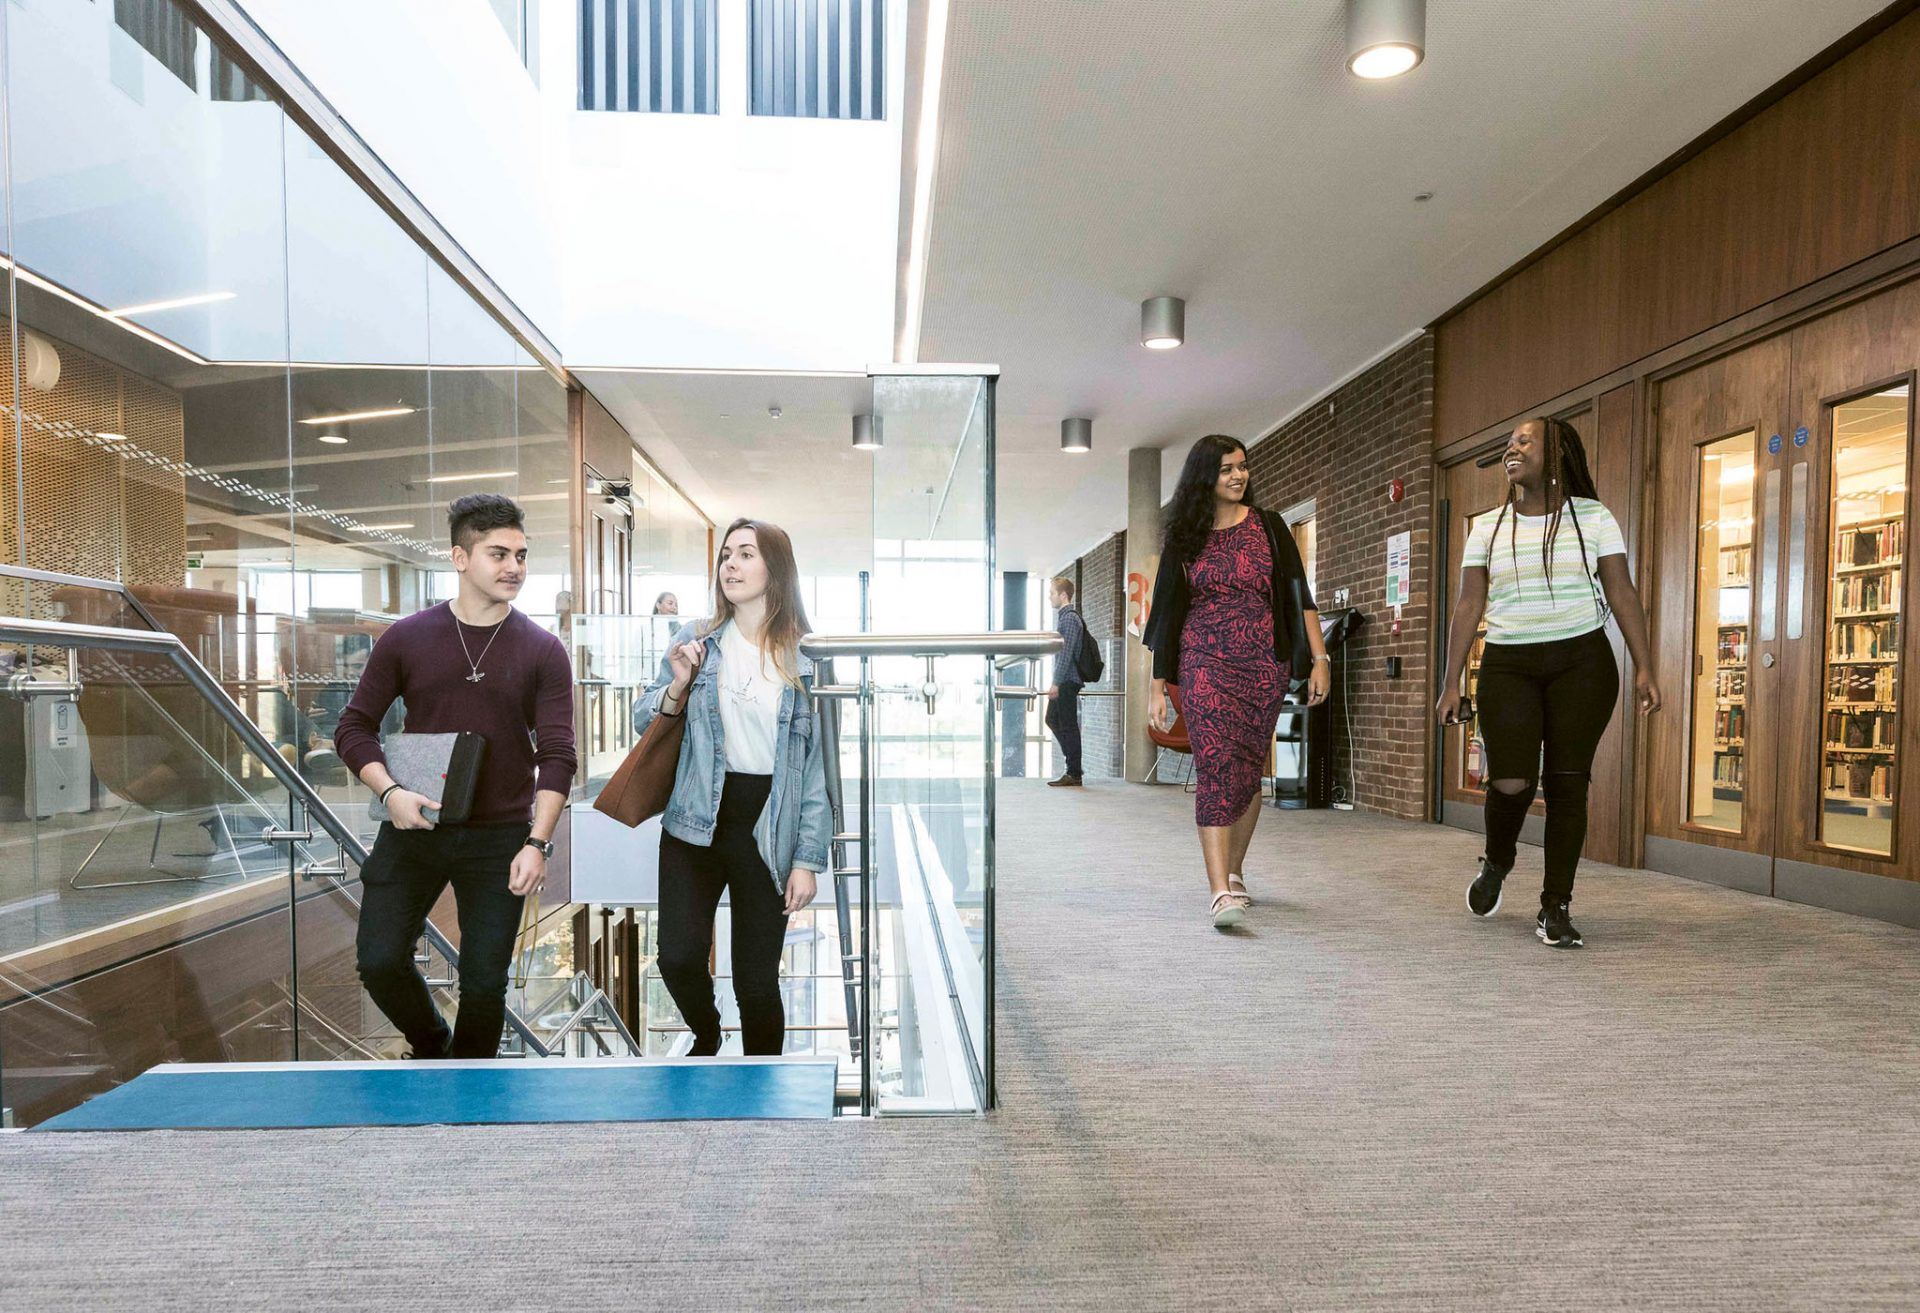 Students walking up stairs inside Templeman Library